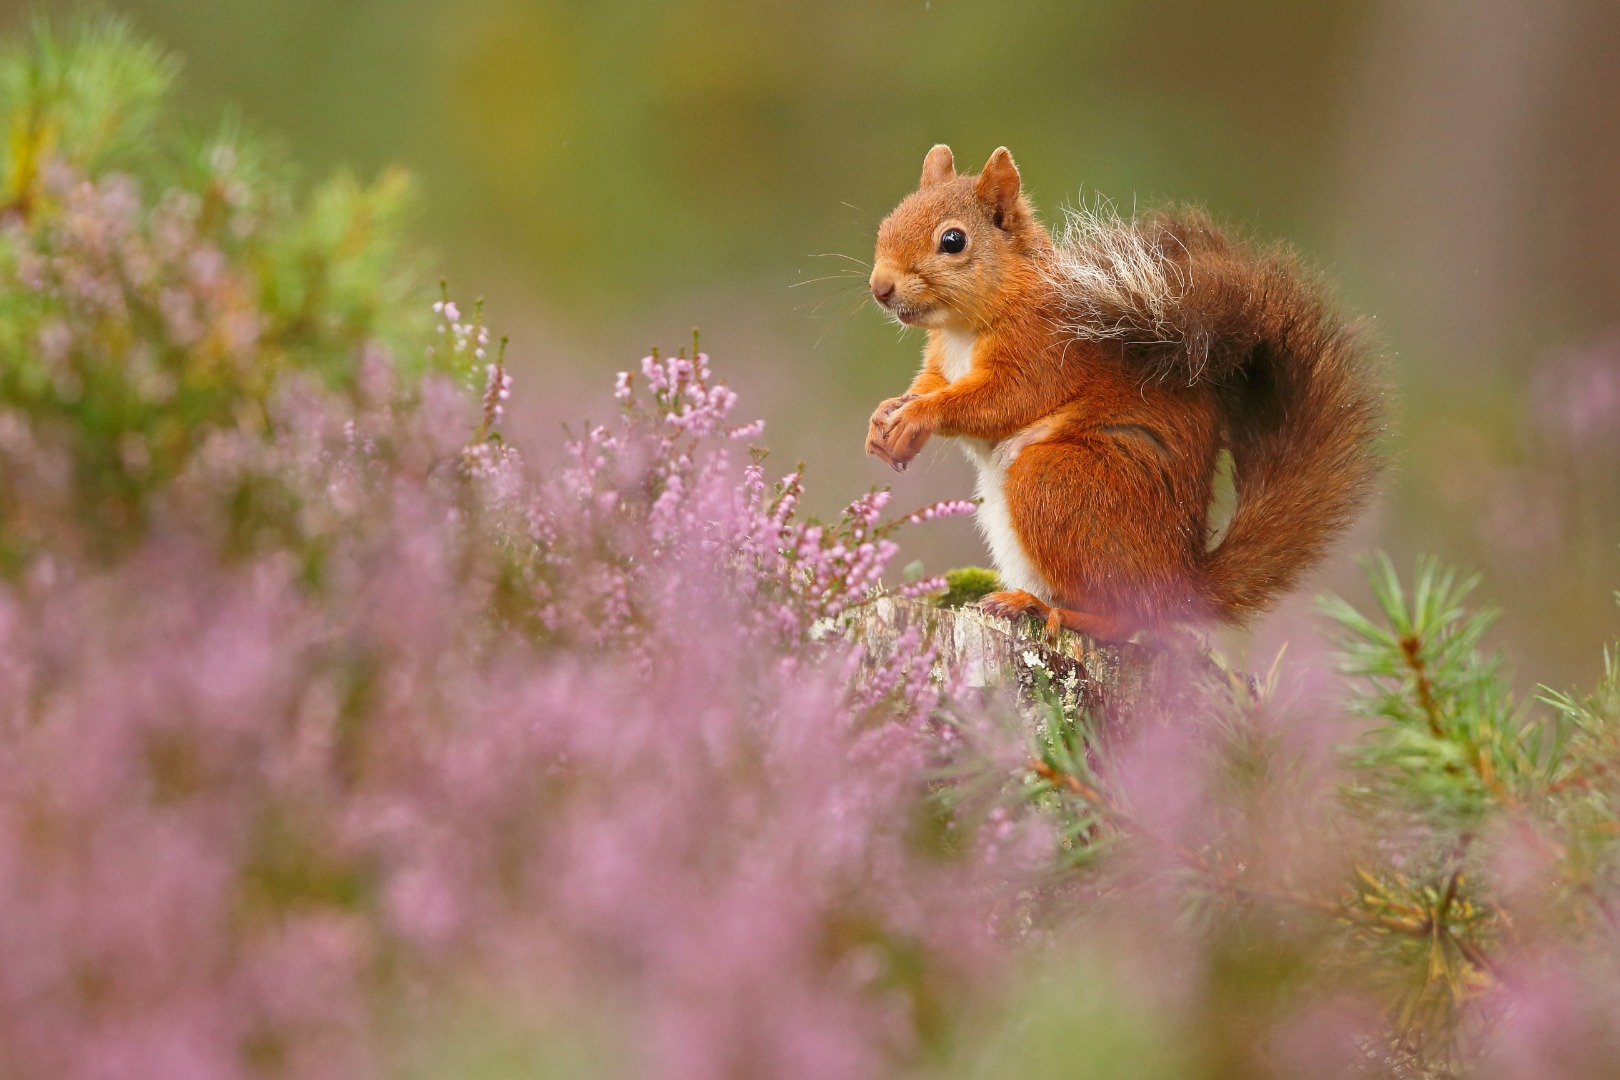 Bats, spiders and squirrels abound in the winners of the British Wildlife Photography Awards